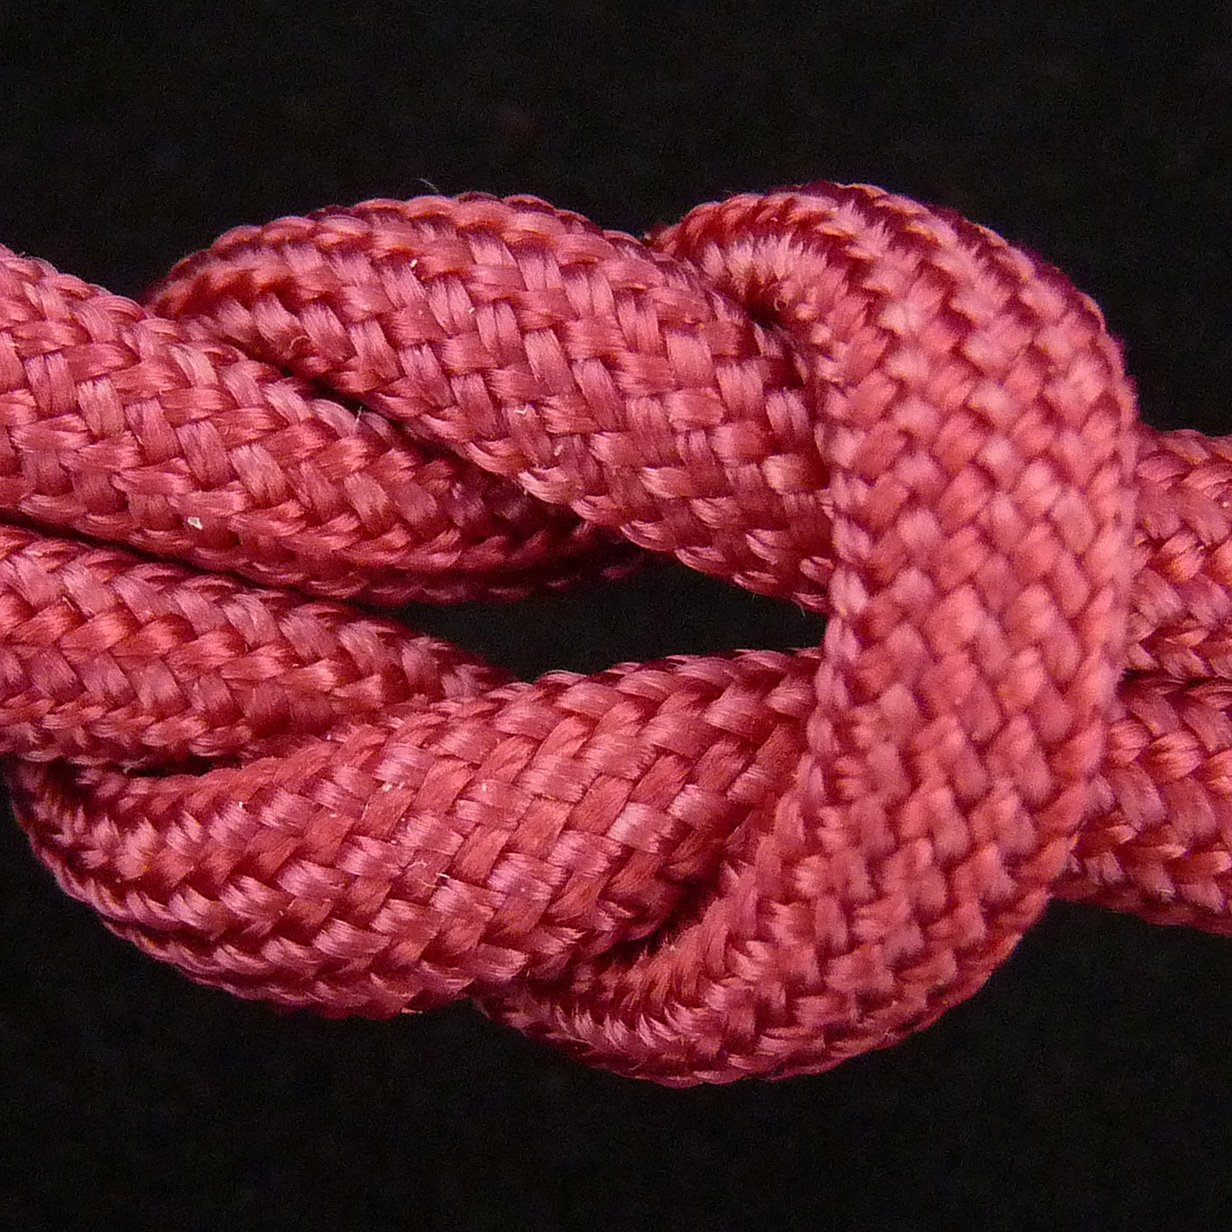 MilSpec Paracord Cranberry Red 110 ft. Hank, Military Survival Braided Parachute 550 Cord. Use with Paracord Tools for Tent Camping, Hiking, Hunting Ropes, Bracelets & Projects. Plus 2 eBooks. by Paracord 550 Mil-Spec (TM) (Image #10)